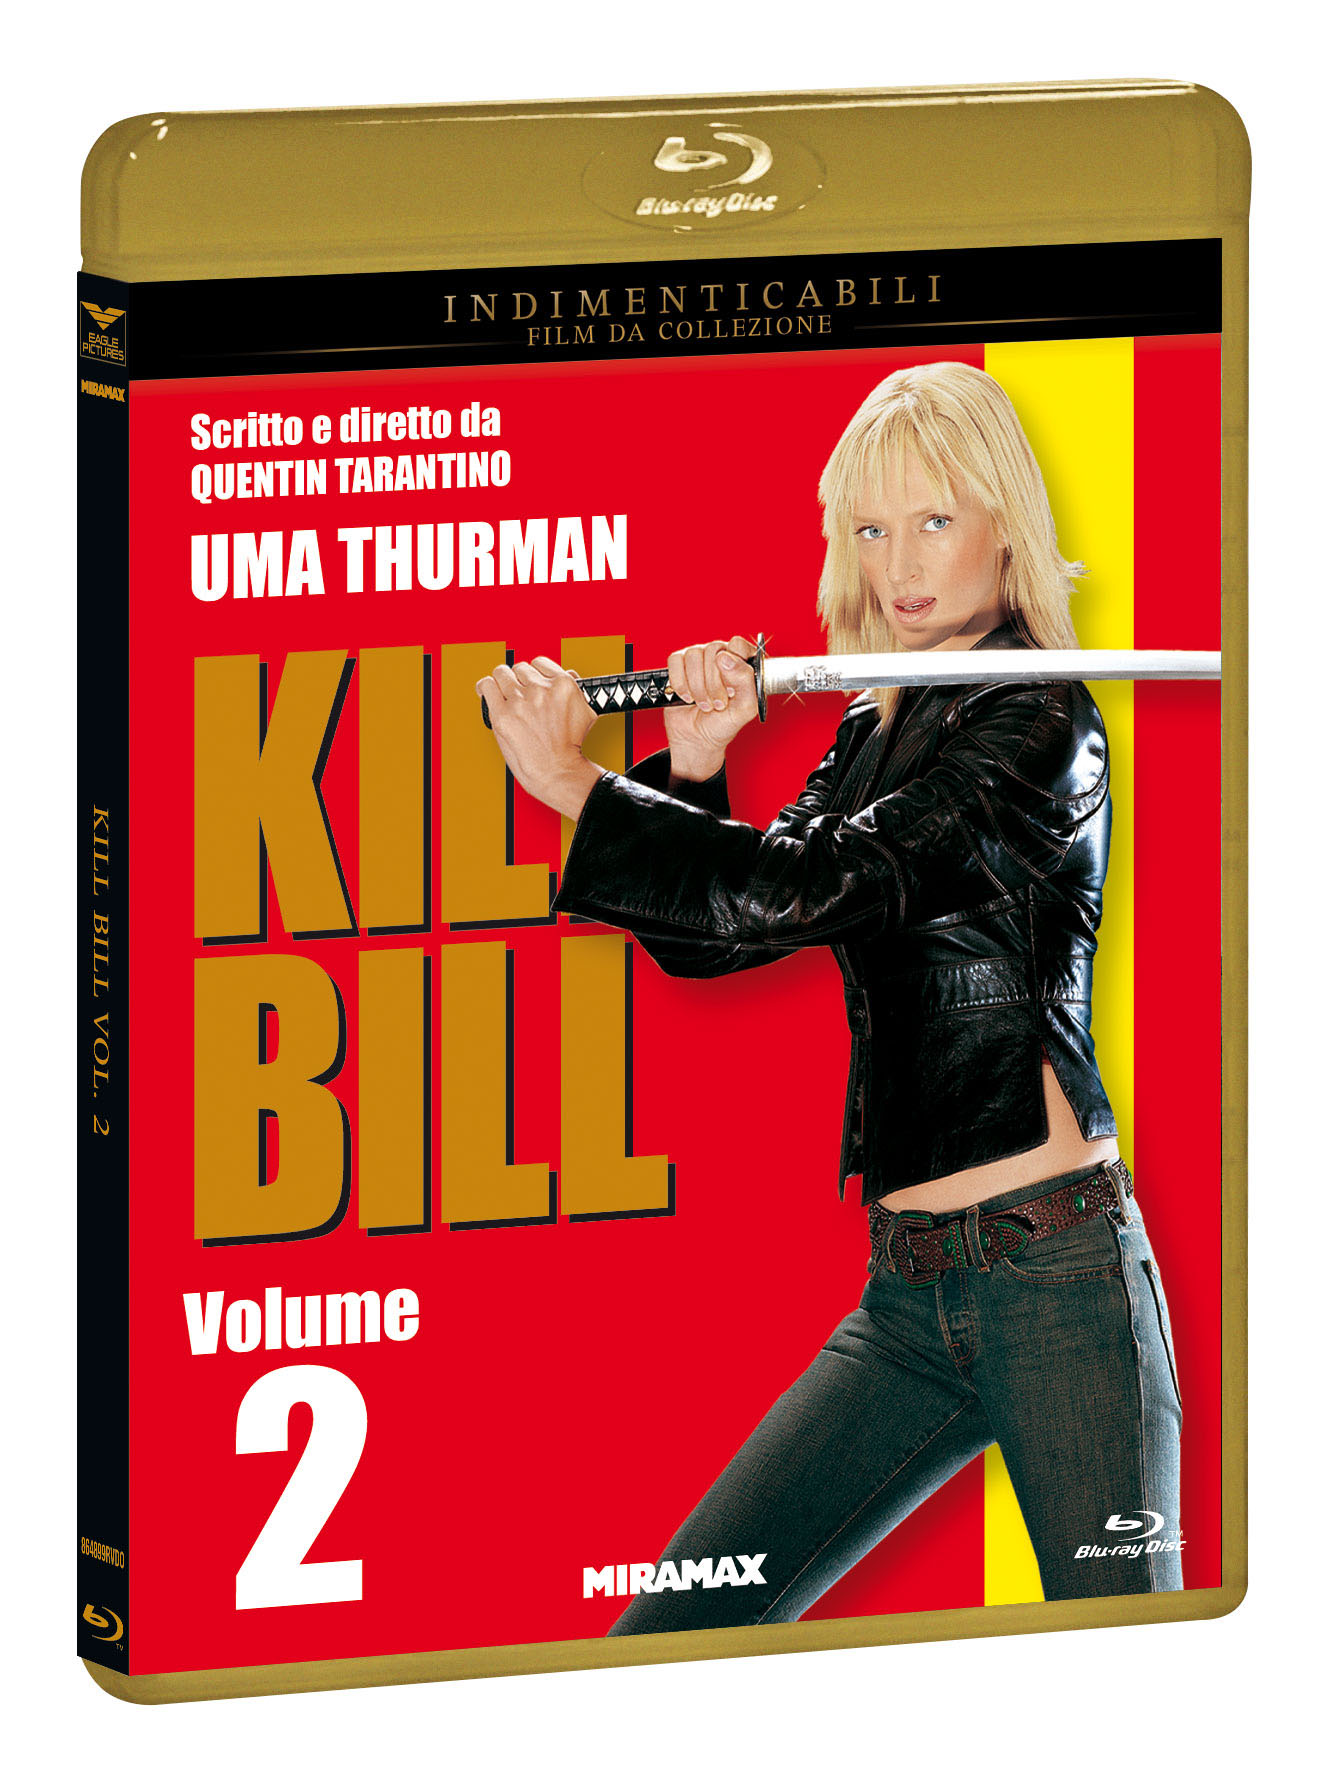 KILL BILL VOL.2 (INDIMENTICABILI) - BLU RAY